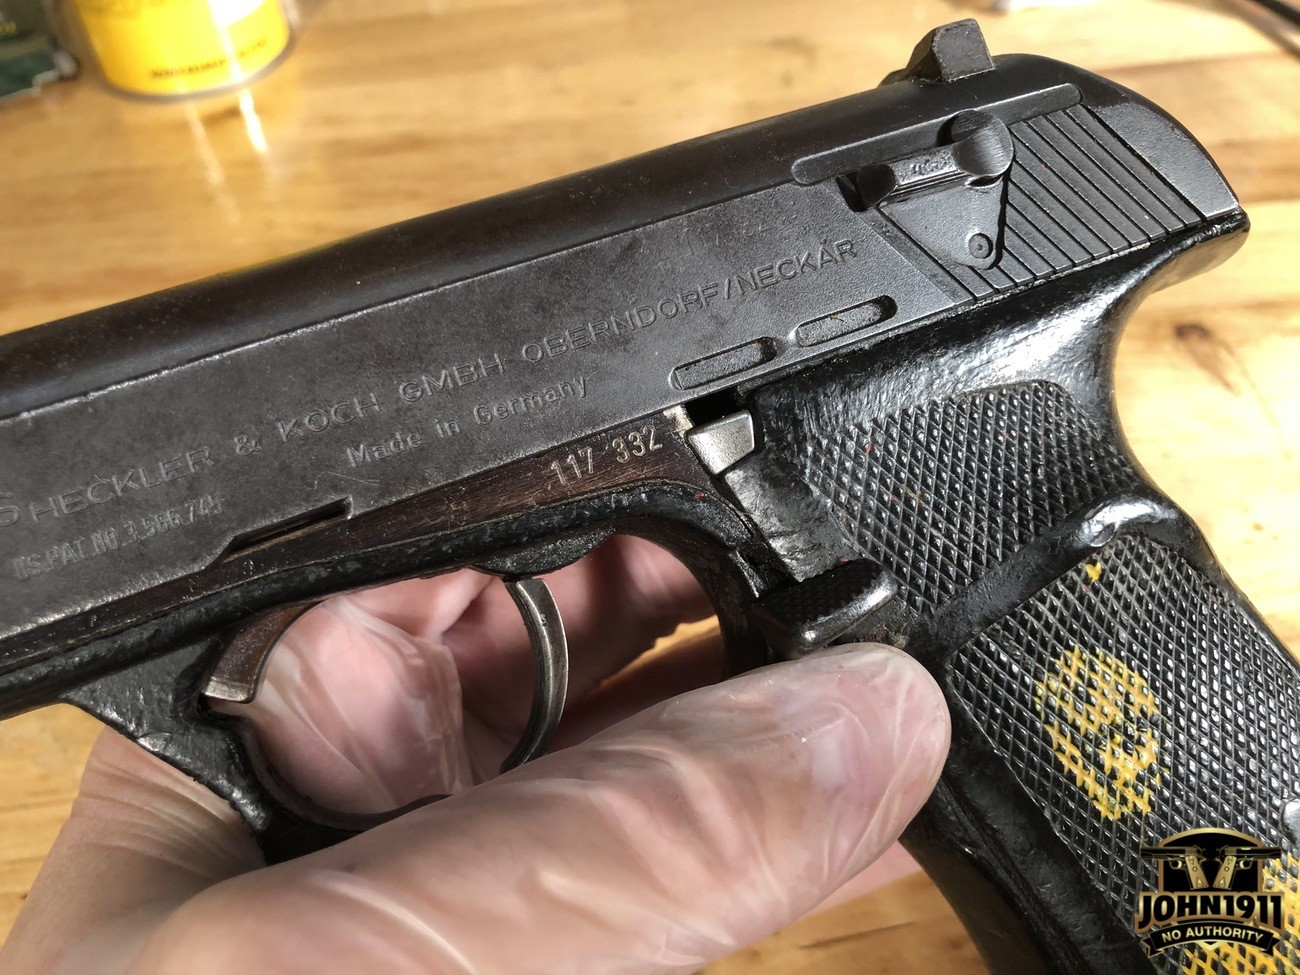 HK P9S Initial Cleaning